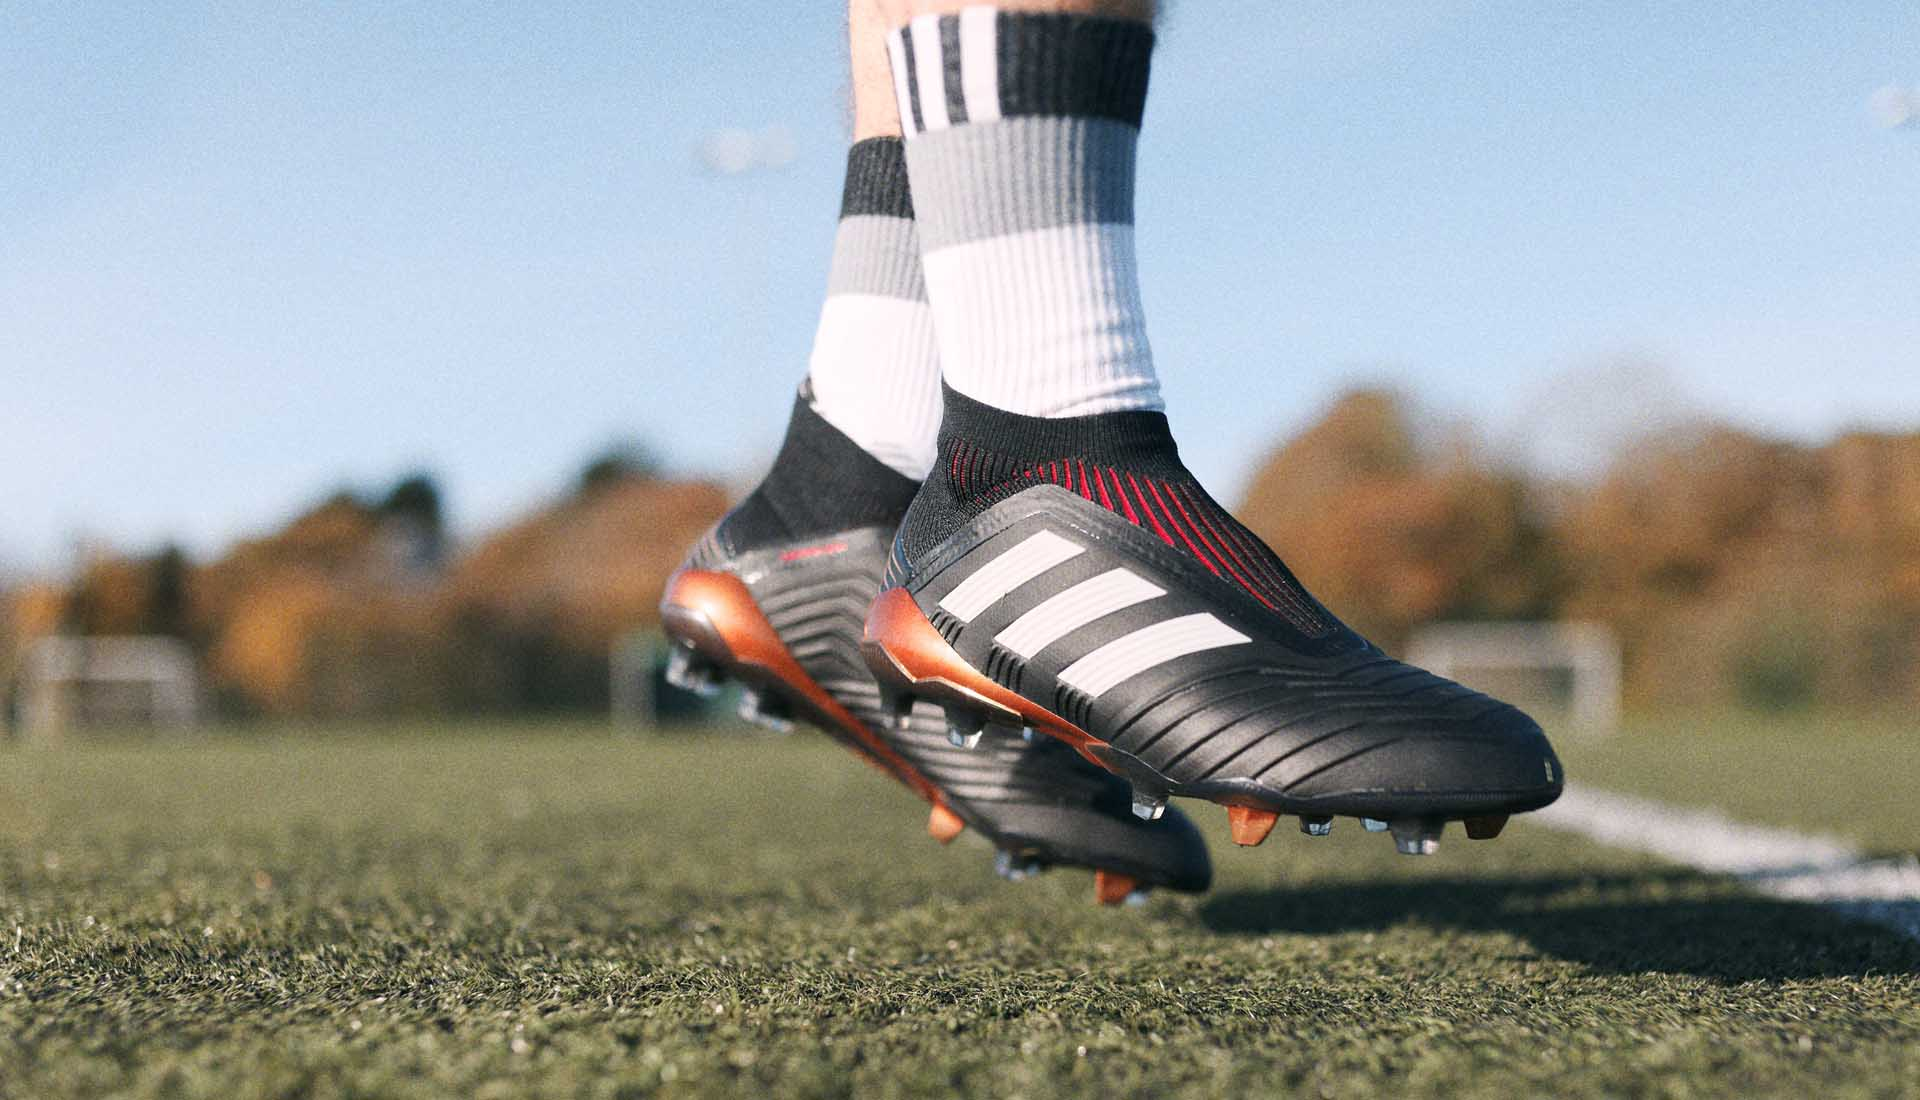 1c2b756a8934 Laced Up  adidas Predator 18+ Football Boots Review - SoccerBible